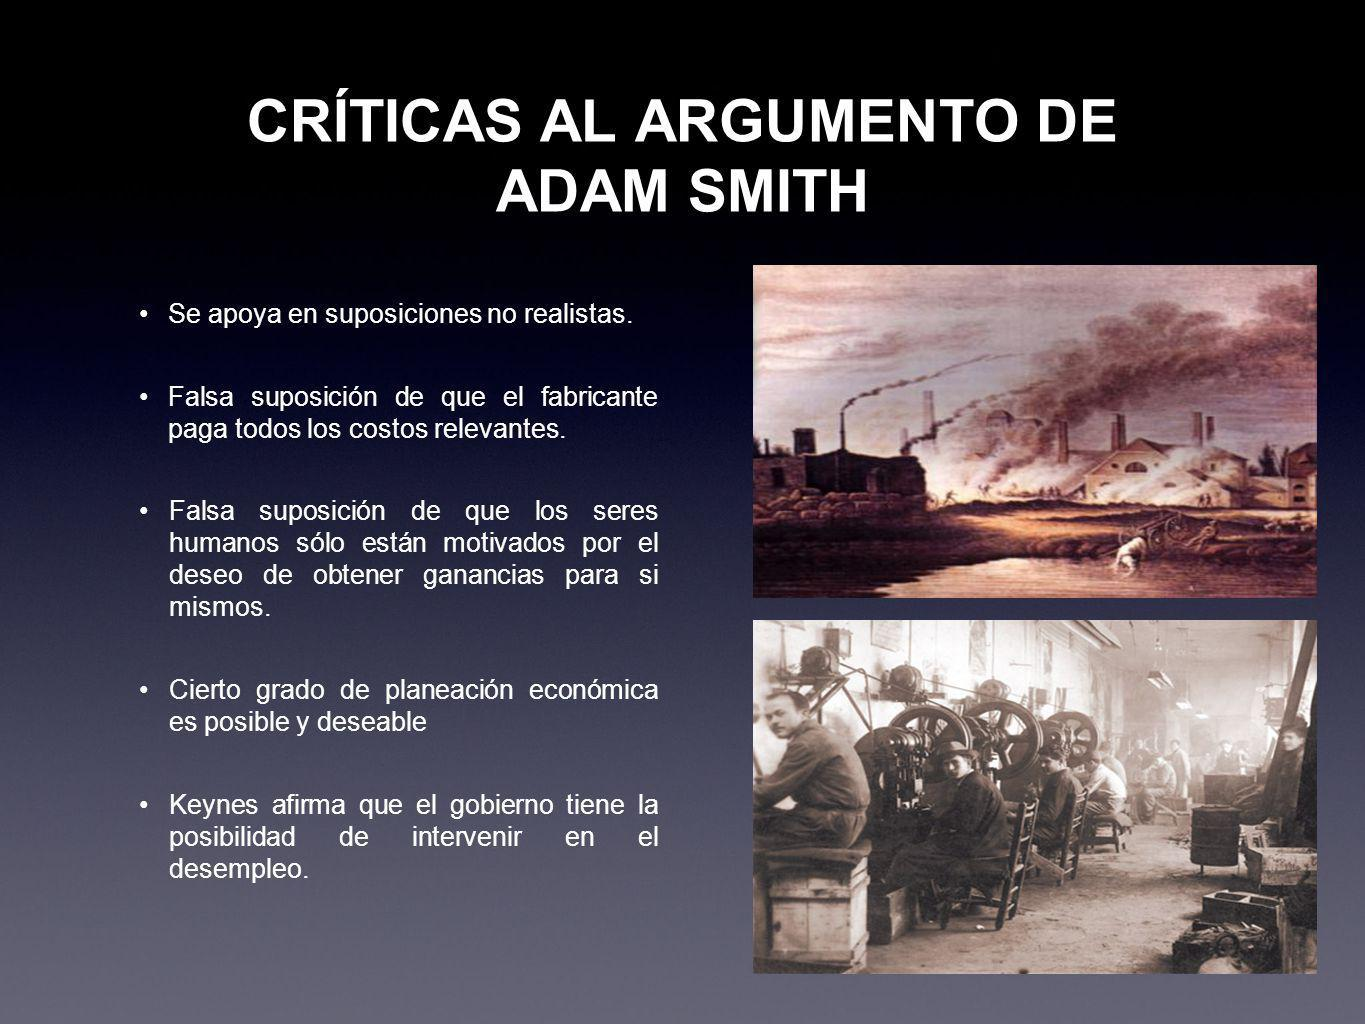 CRÍTICAS AL ARGUMENTO DE ADAM SMITH